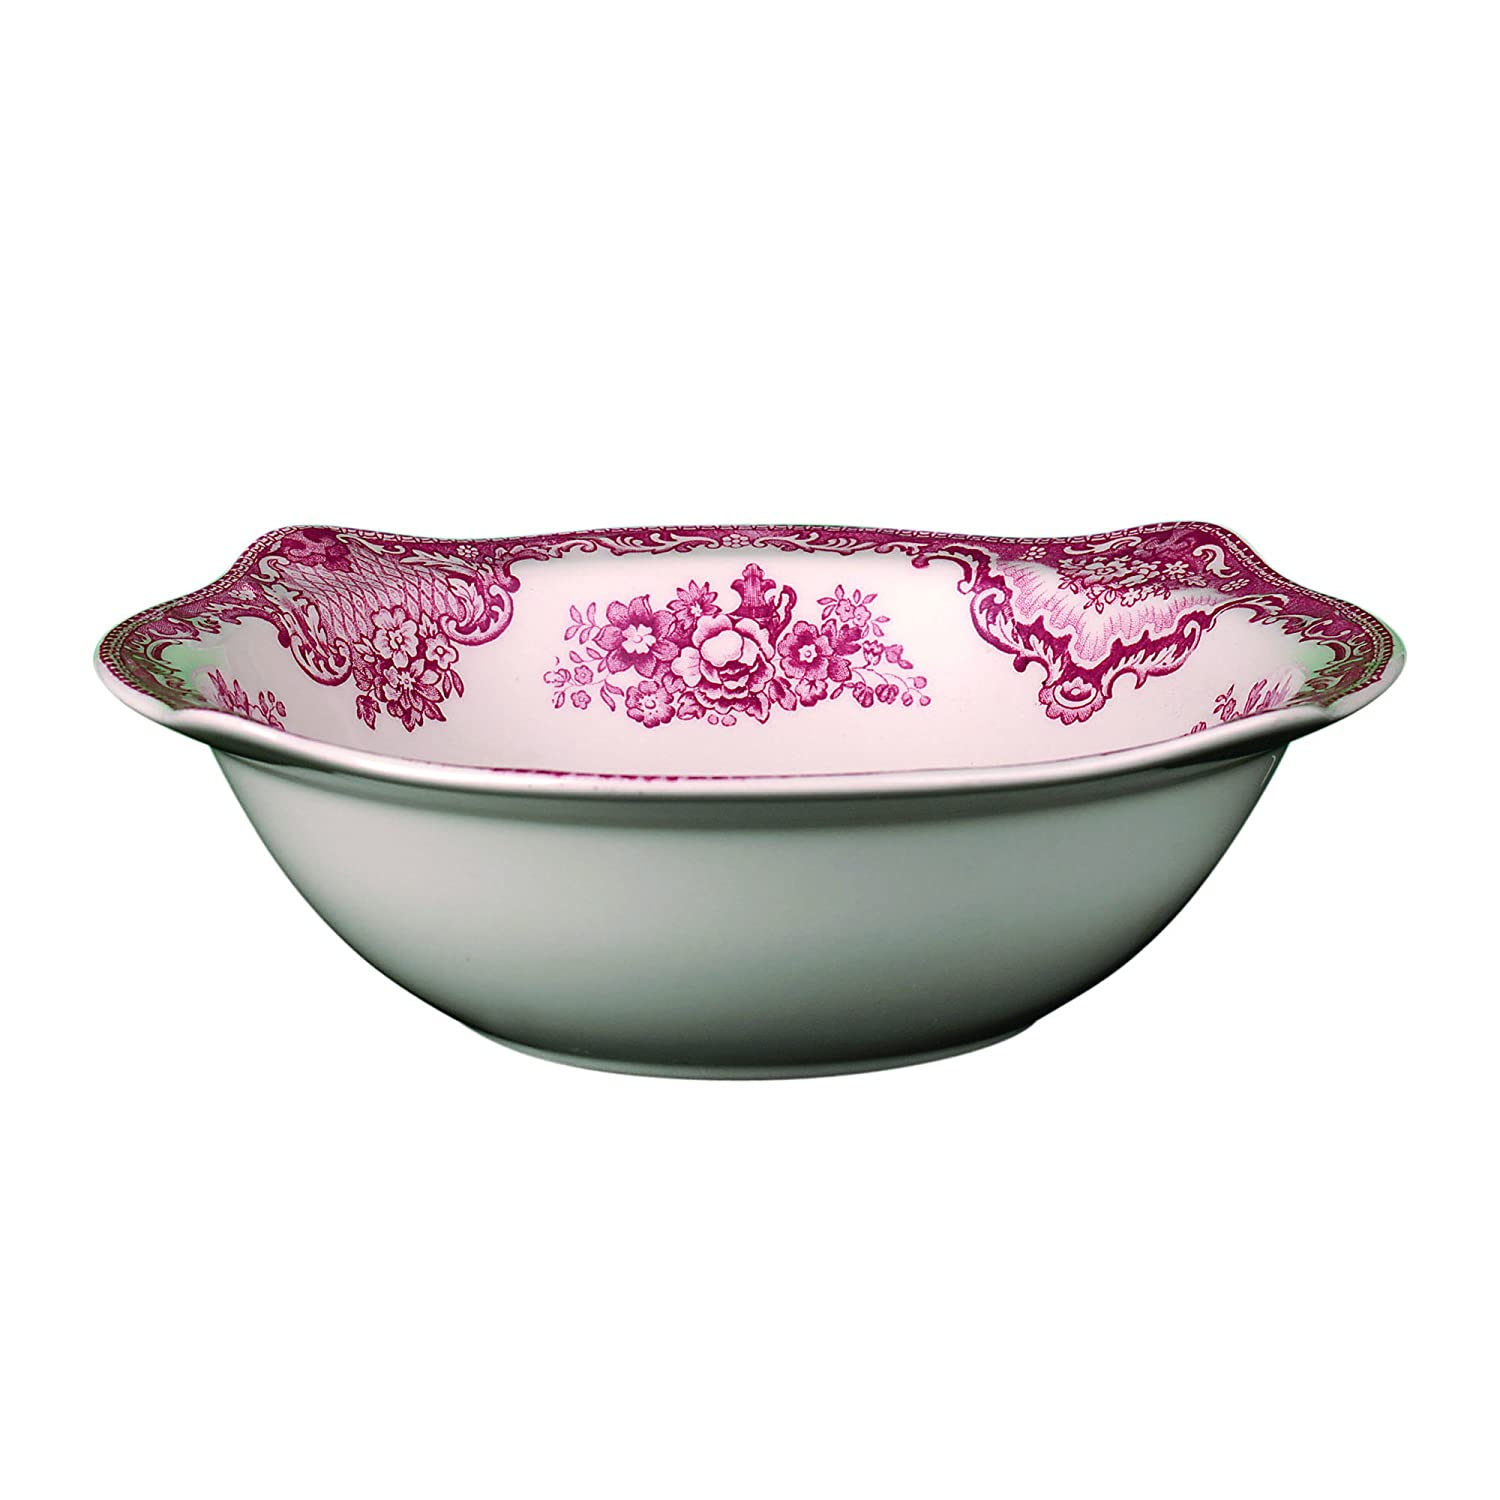 Johnson Brothers Old Britain Castles Pink Open Vegetable Bowl 2425621034